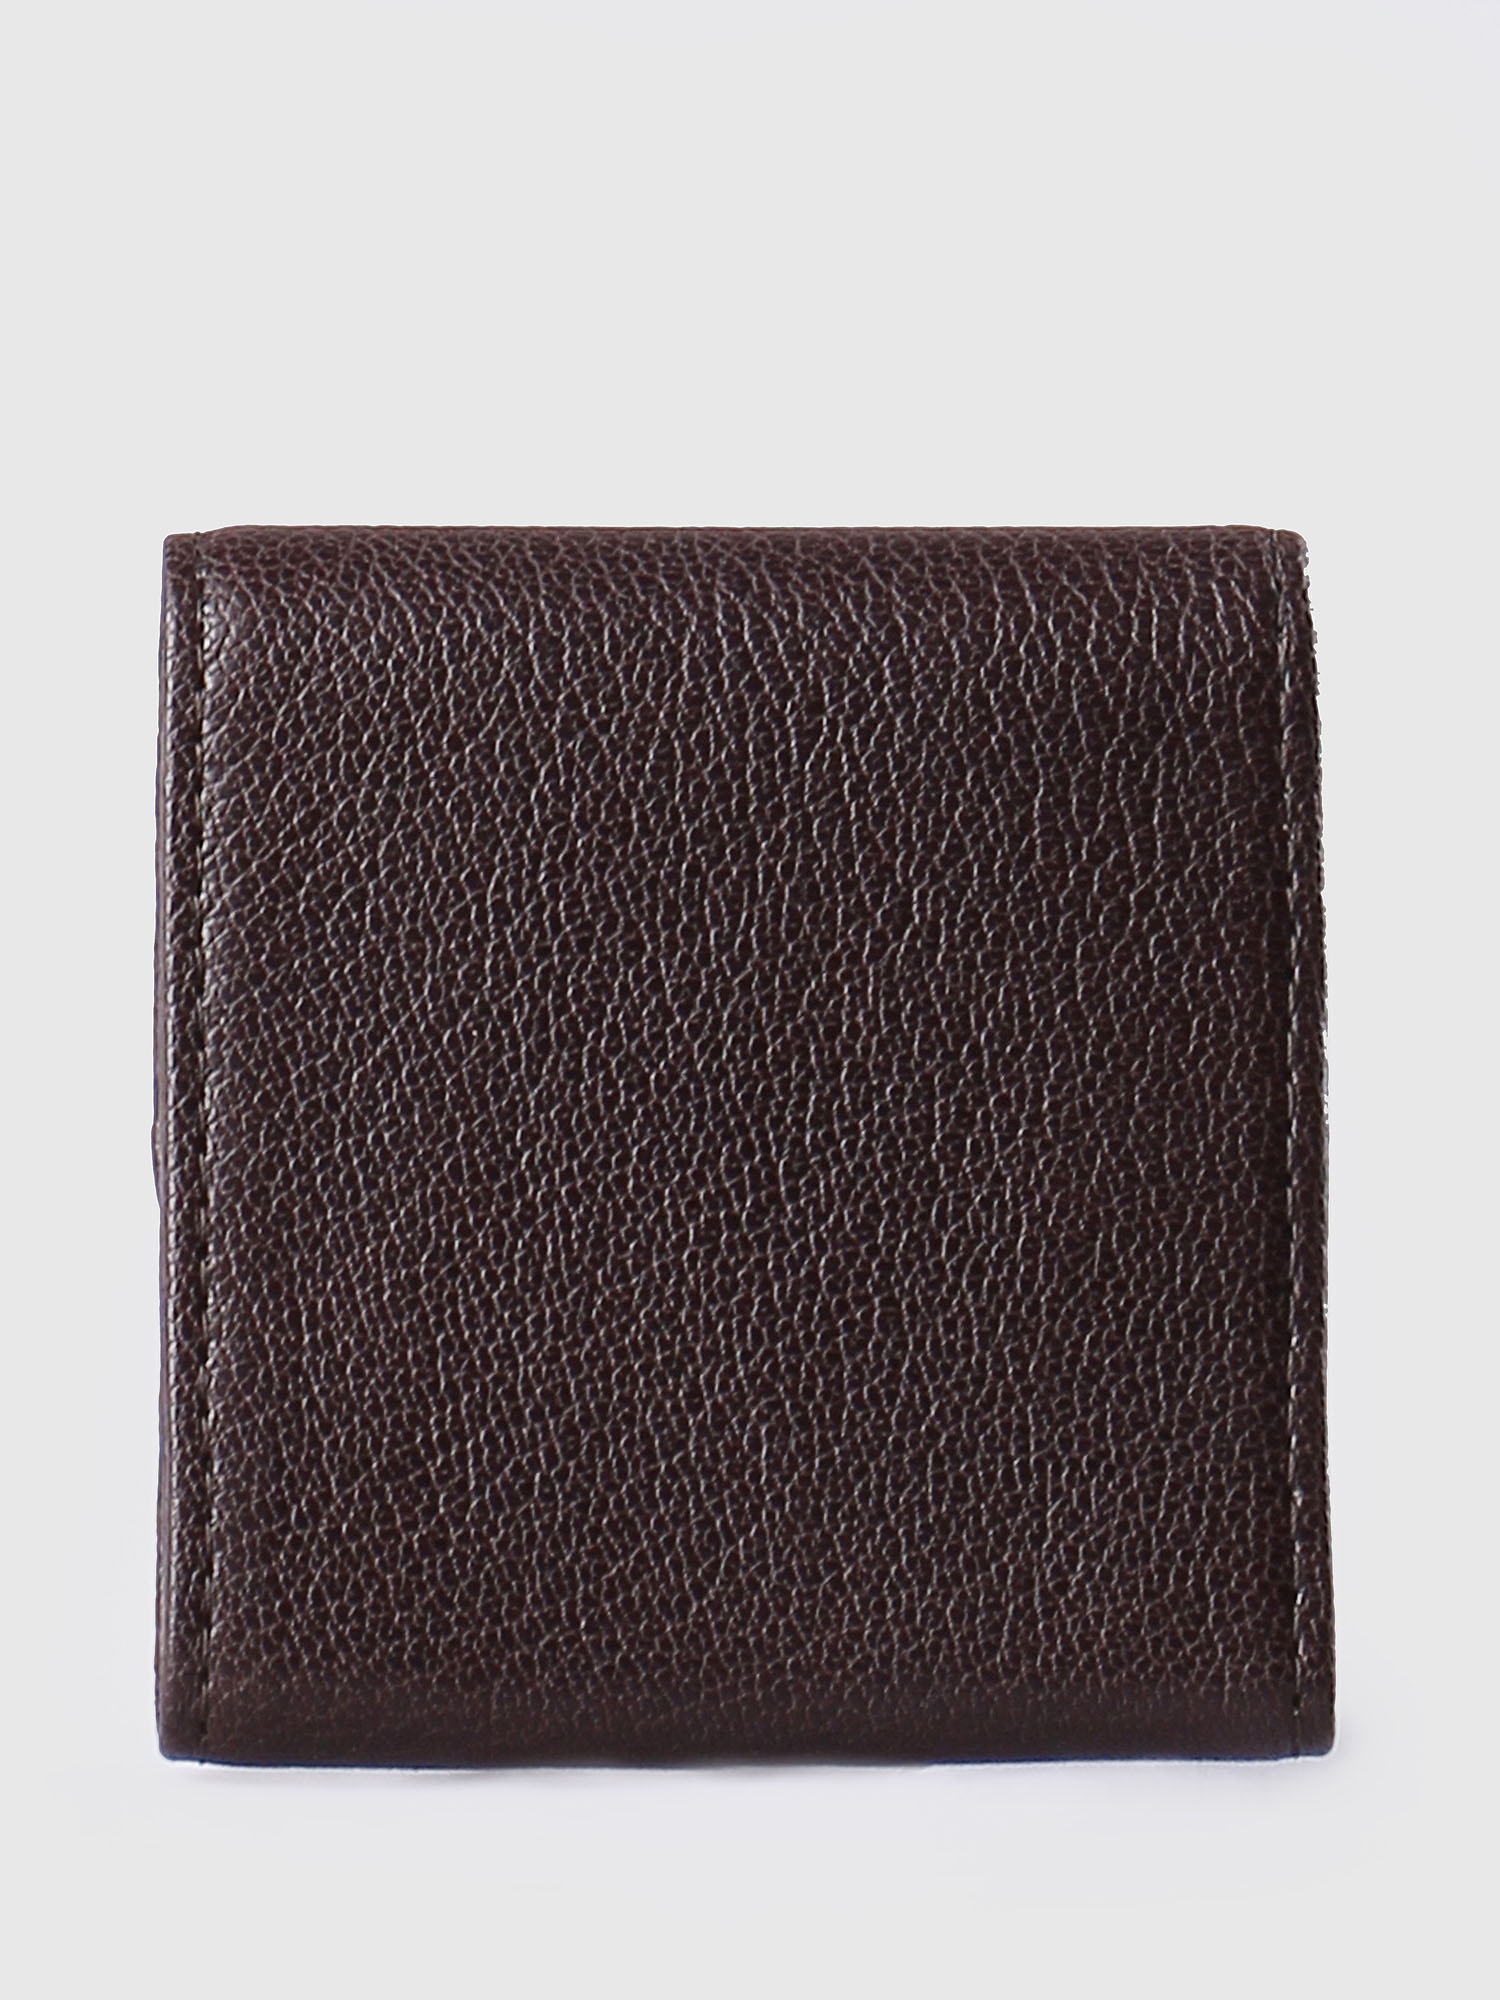 Diesel - KOPPER,  - Small Wallets - Image 2